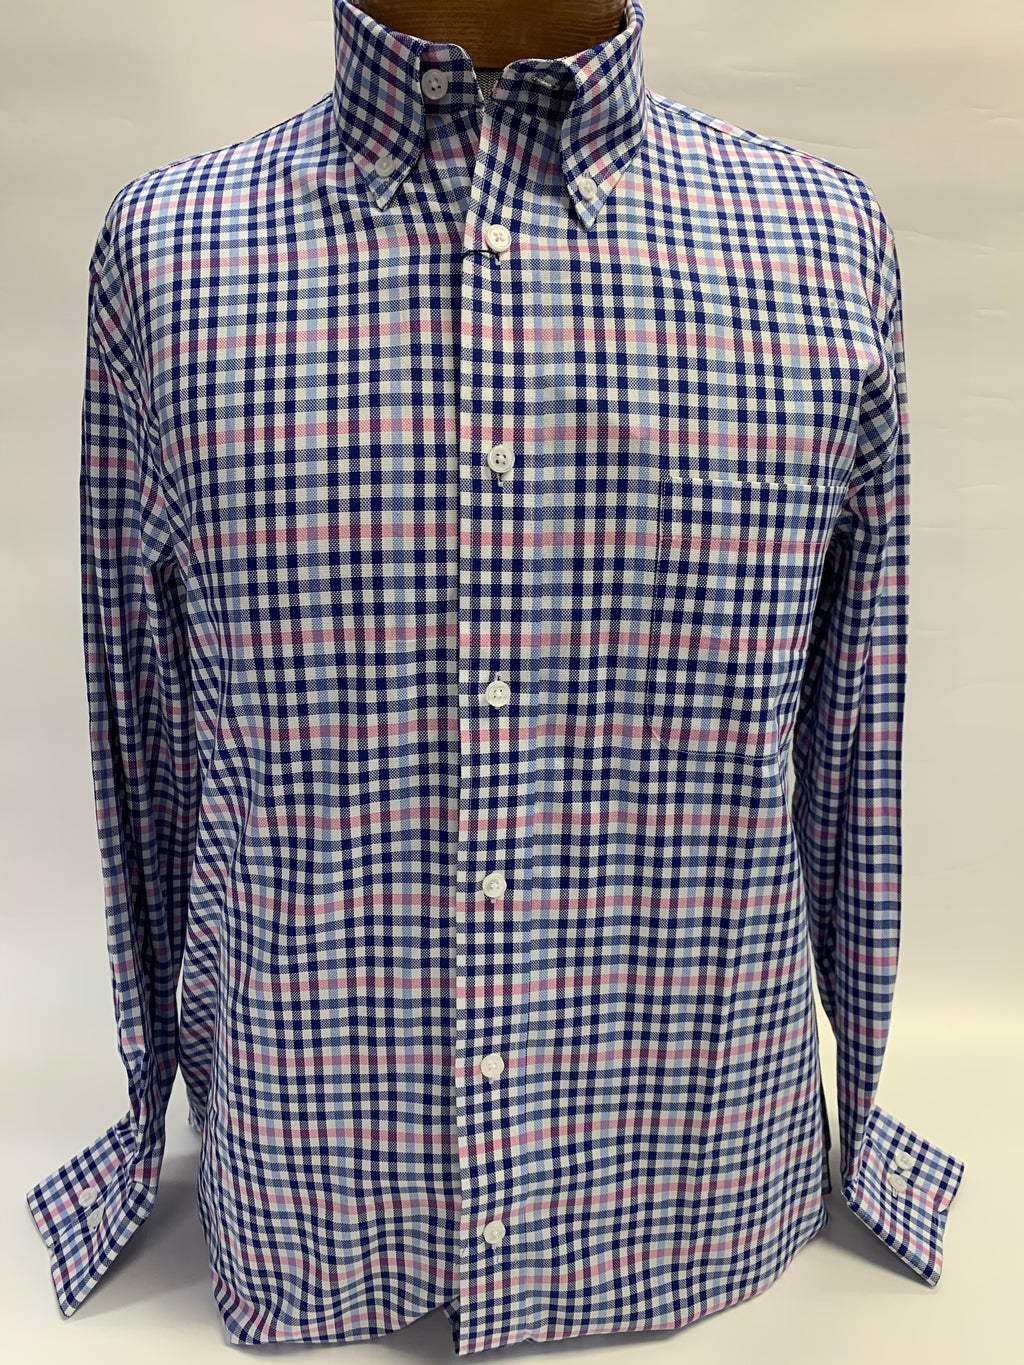 Giovanni's Cotton L/S Button Down Gingham WB2183